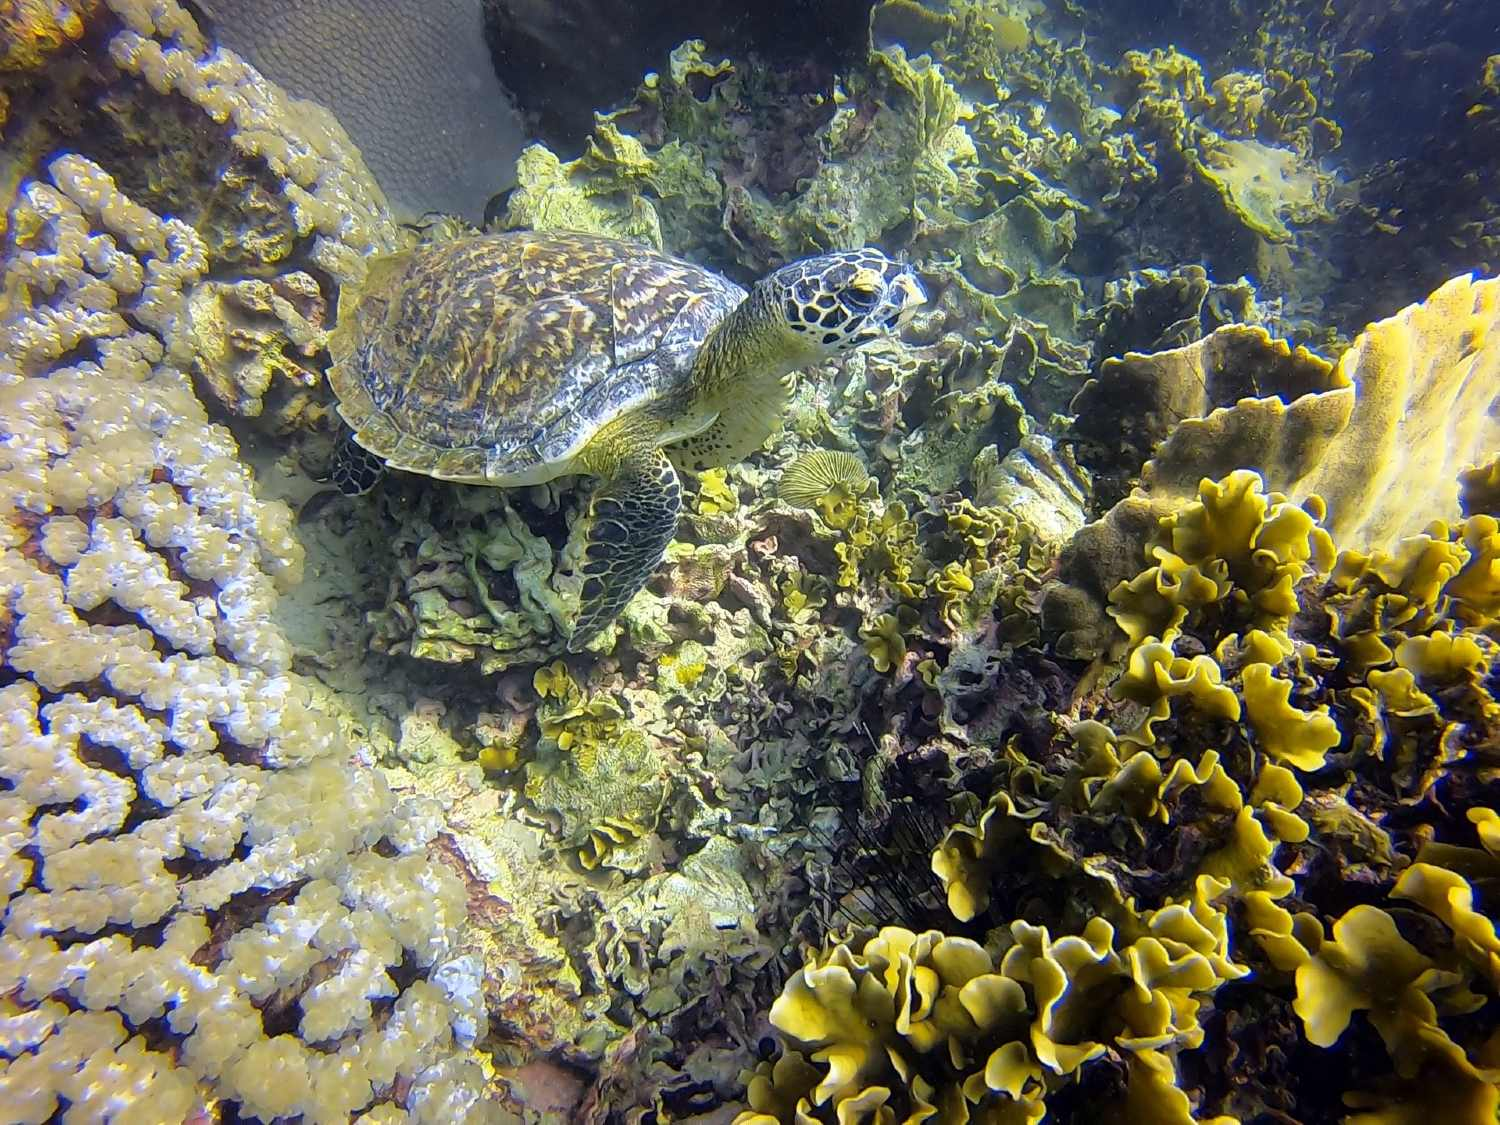 A turtle in the sea of Koh Tao